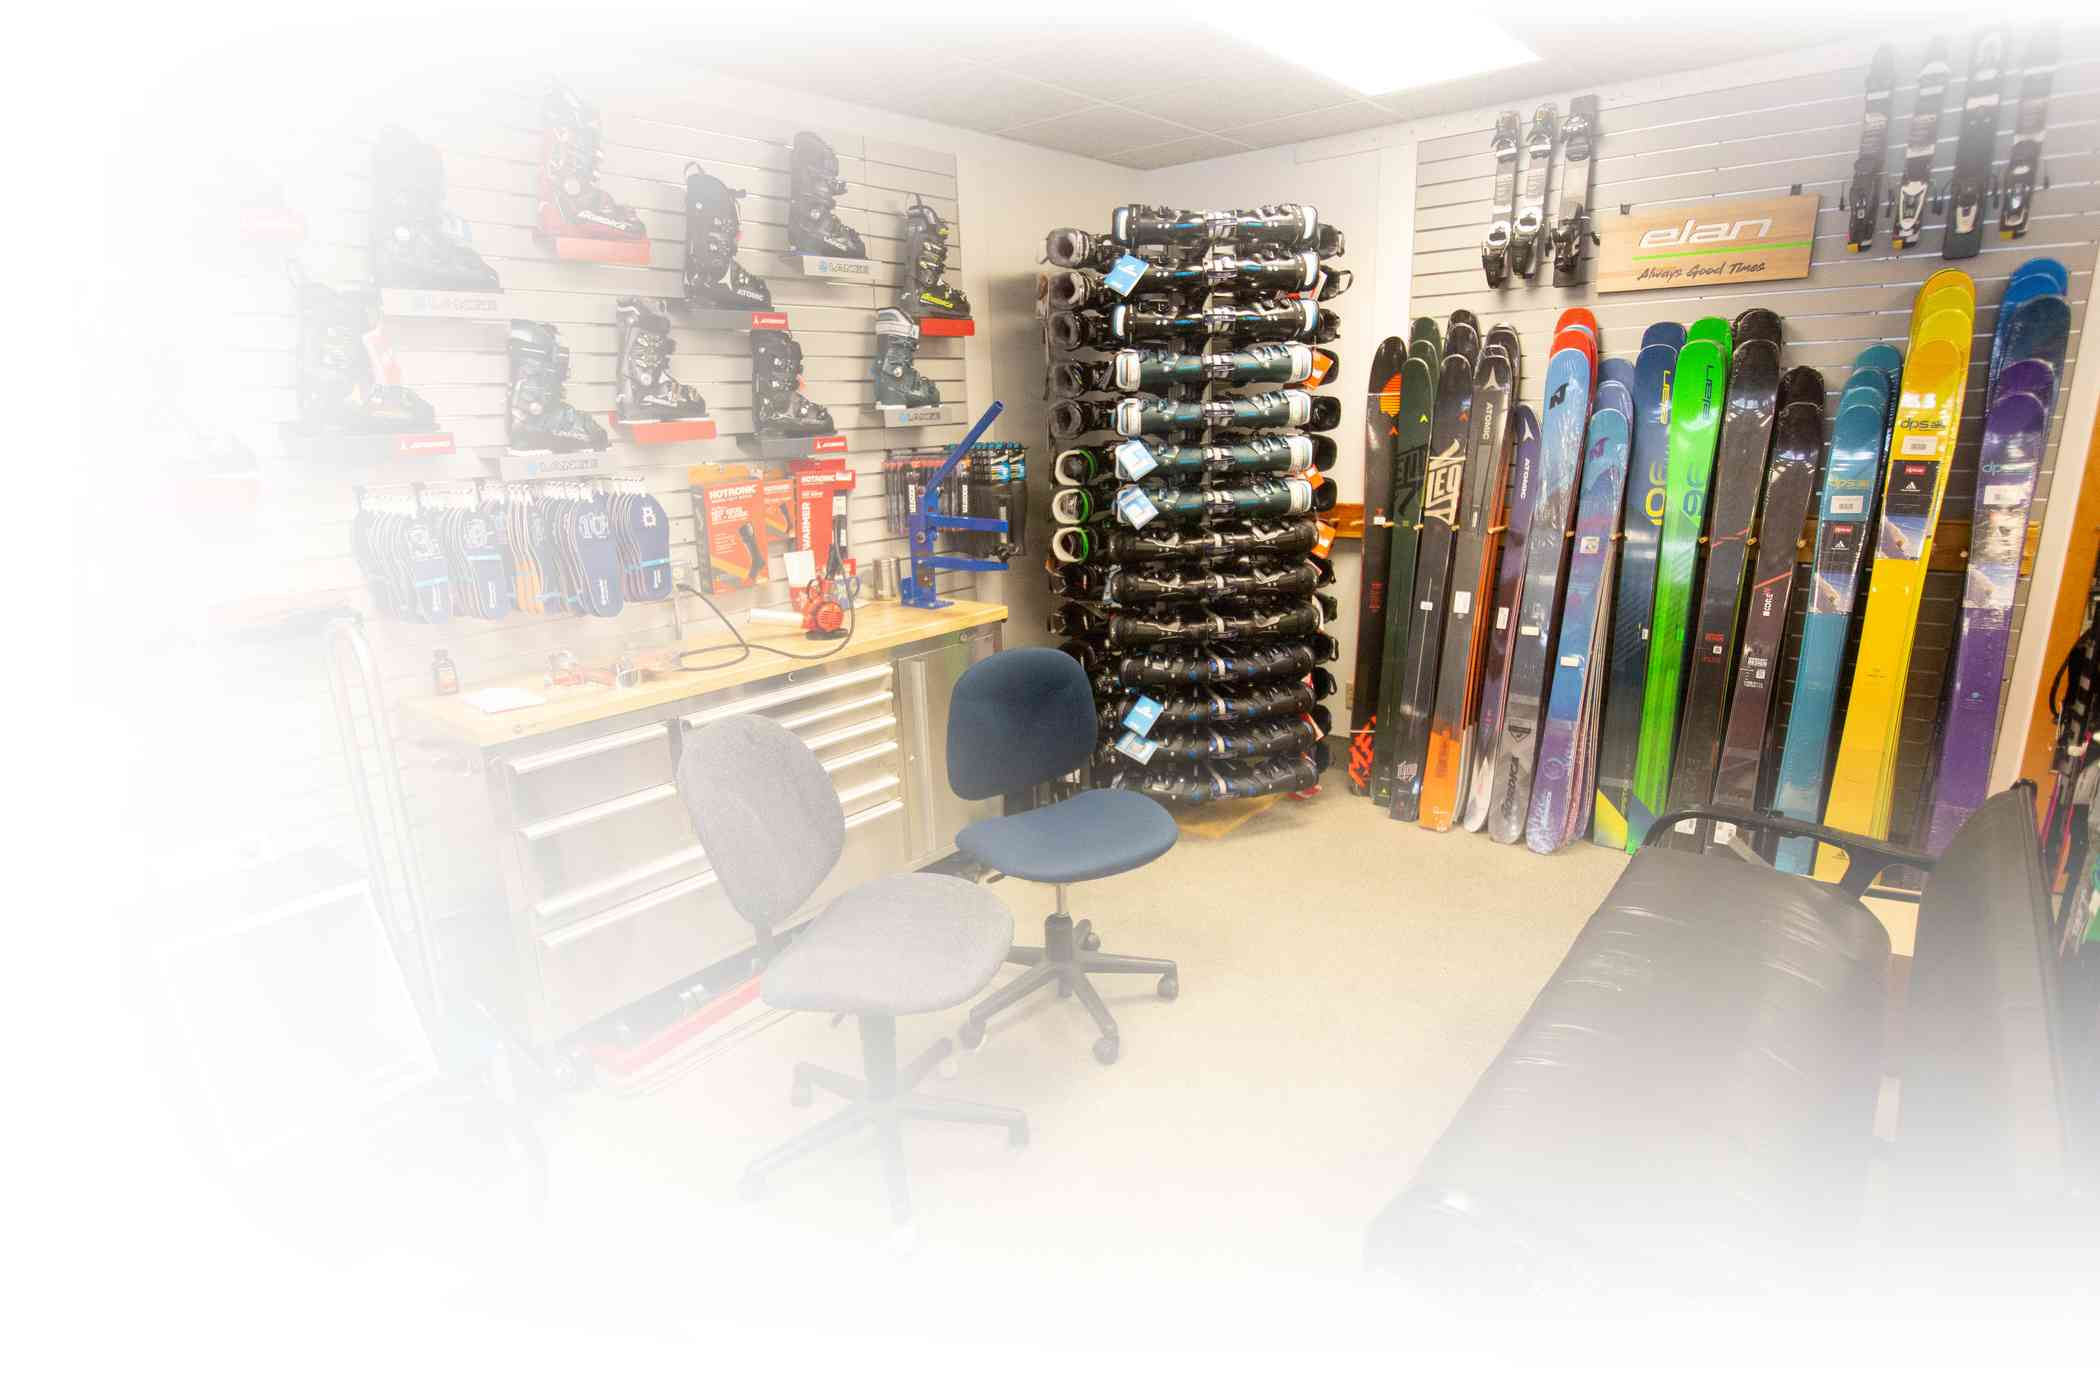 Boot fitting station and ski tuning center at Alta's Ski Shop